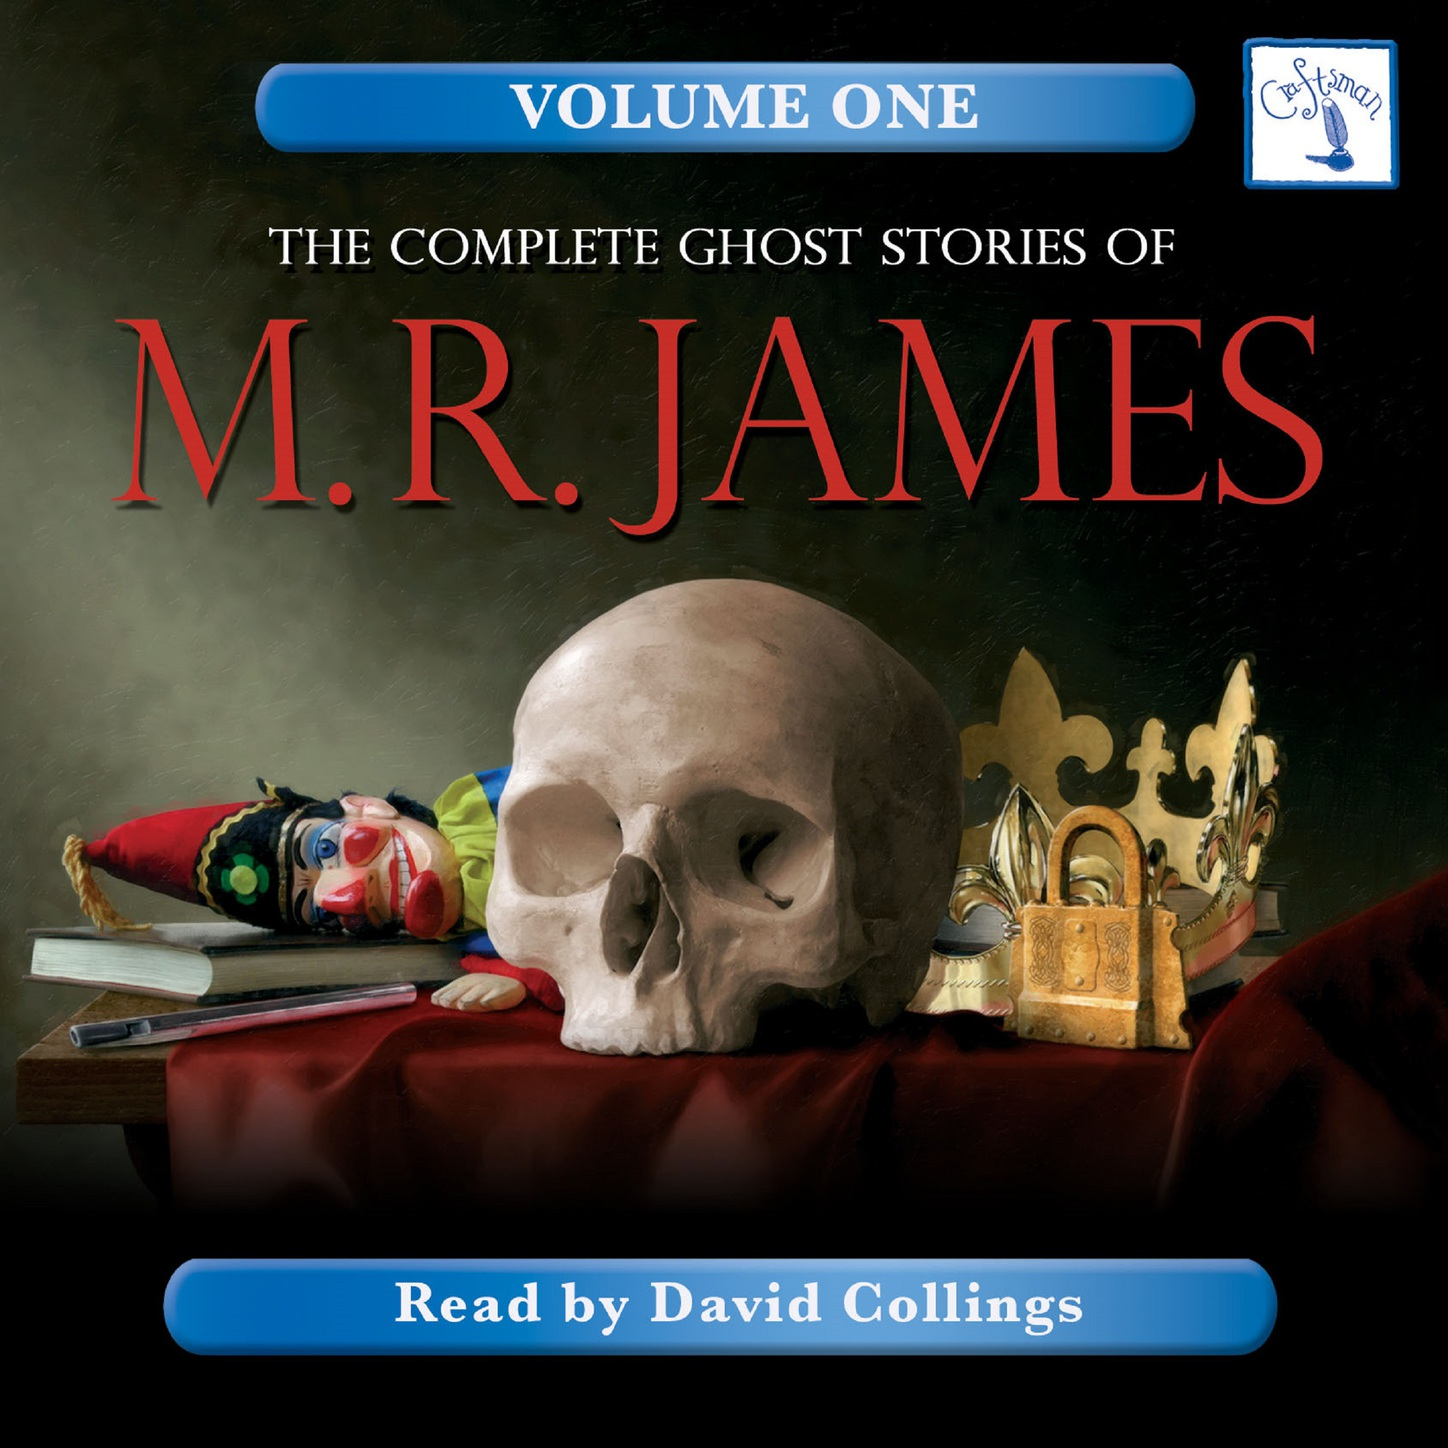 M. R. James The Complete Ghost Stories of M. R. James, Vol. 1 (Unabridged)